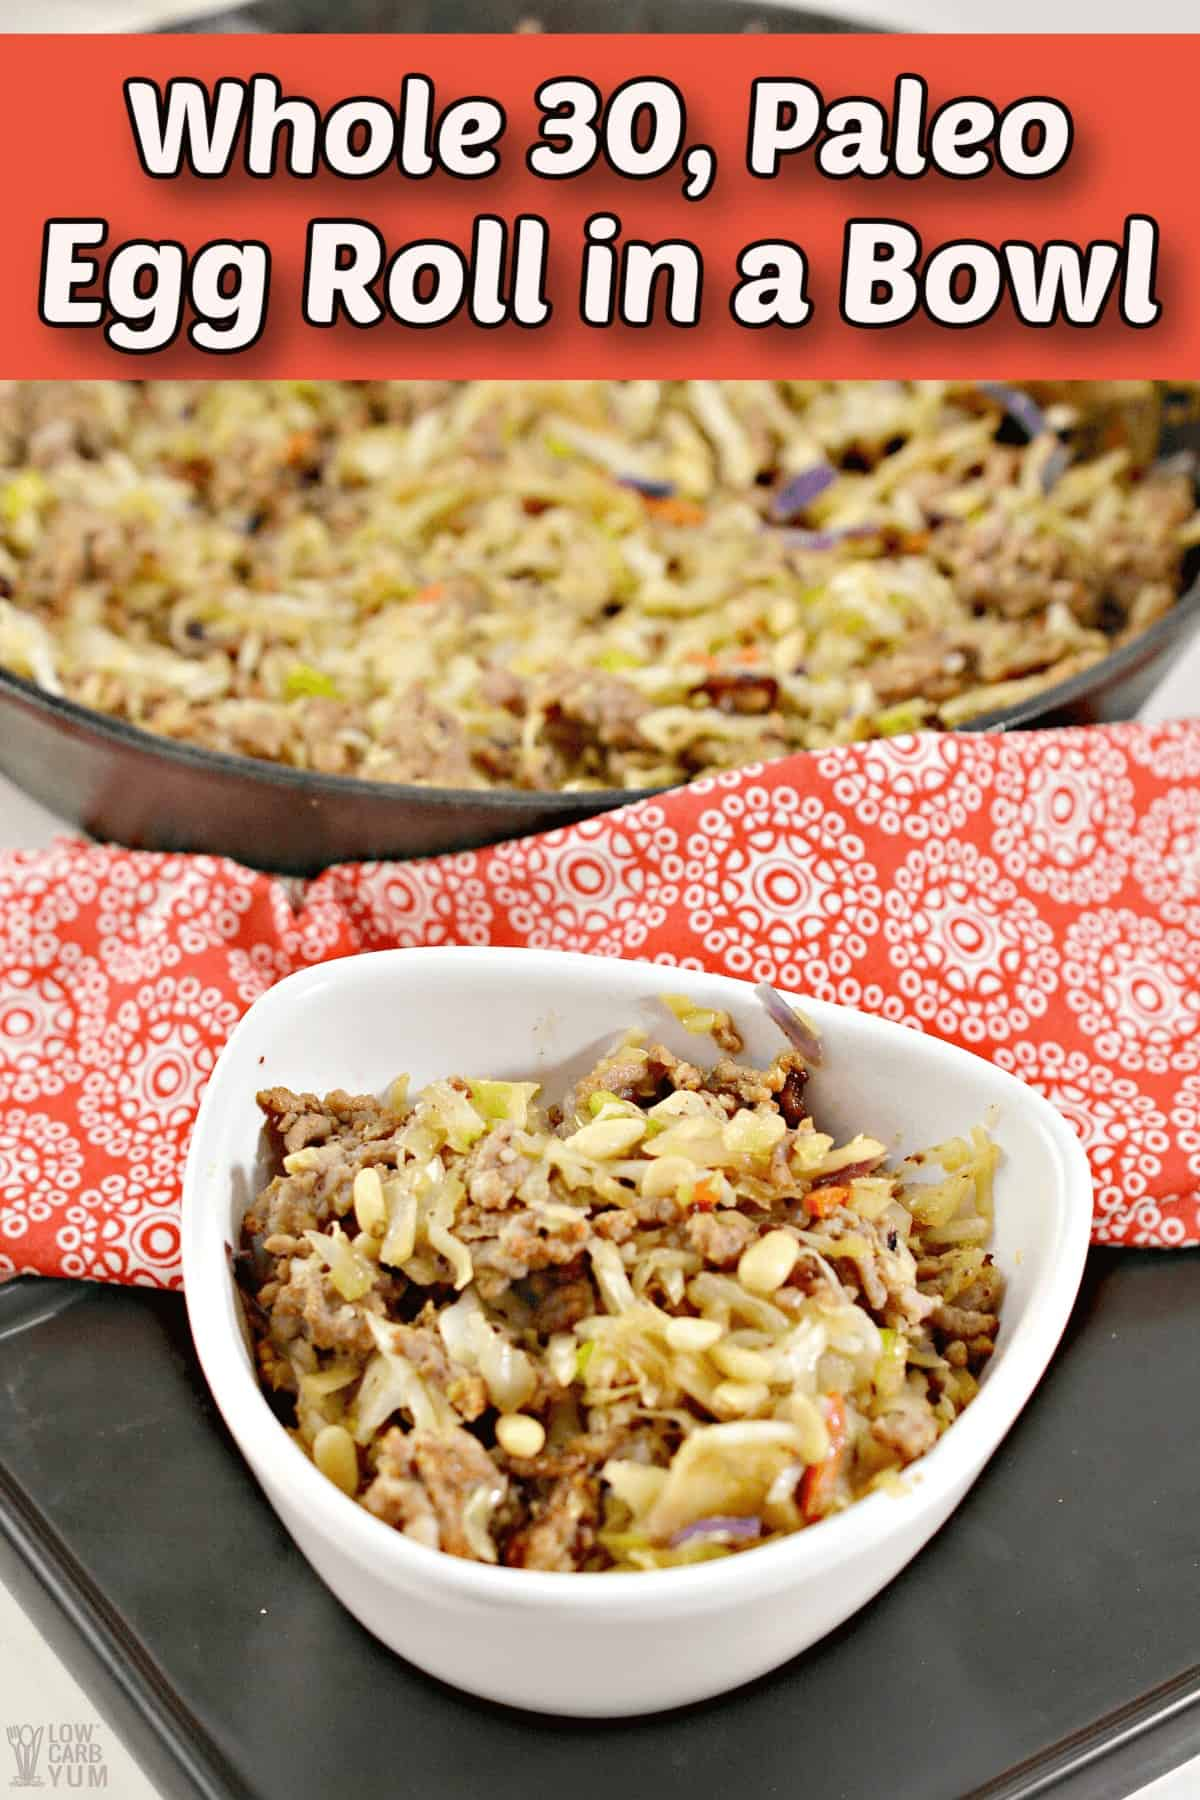 sausage egg roll in a bowl whole30 paleo pintrest image